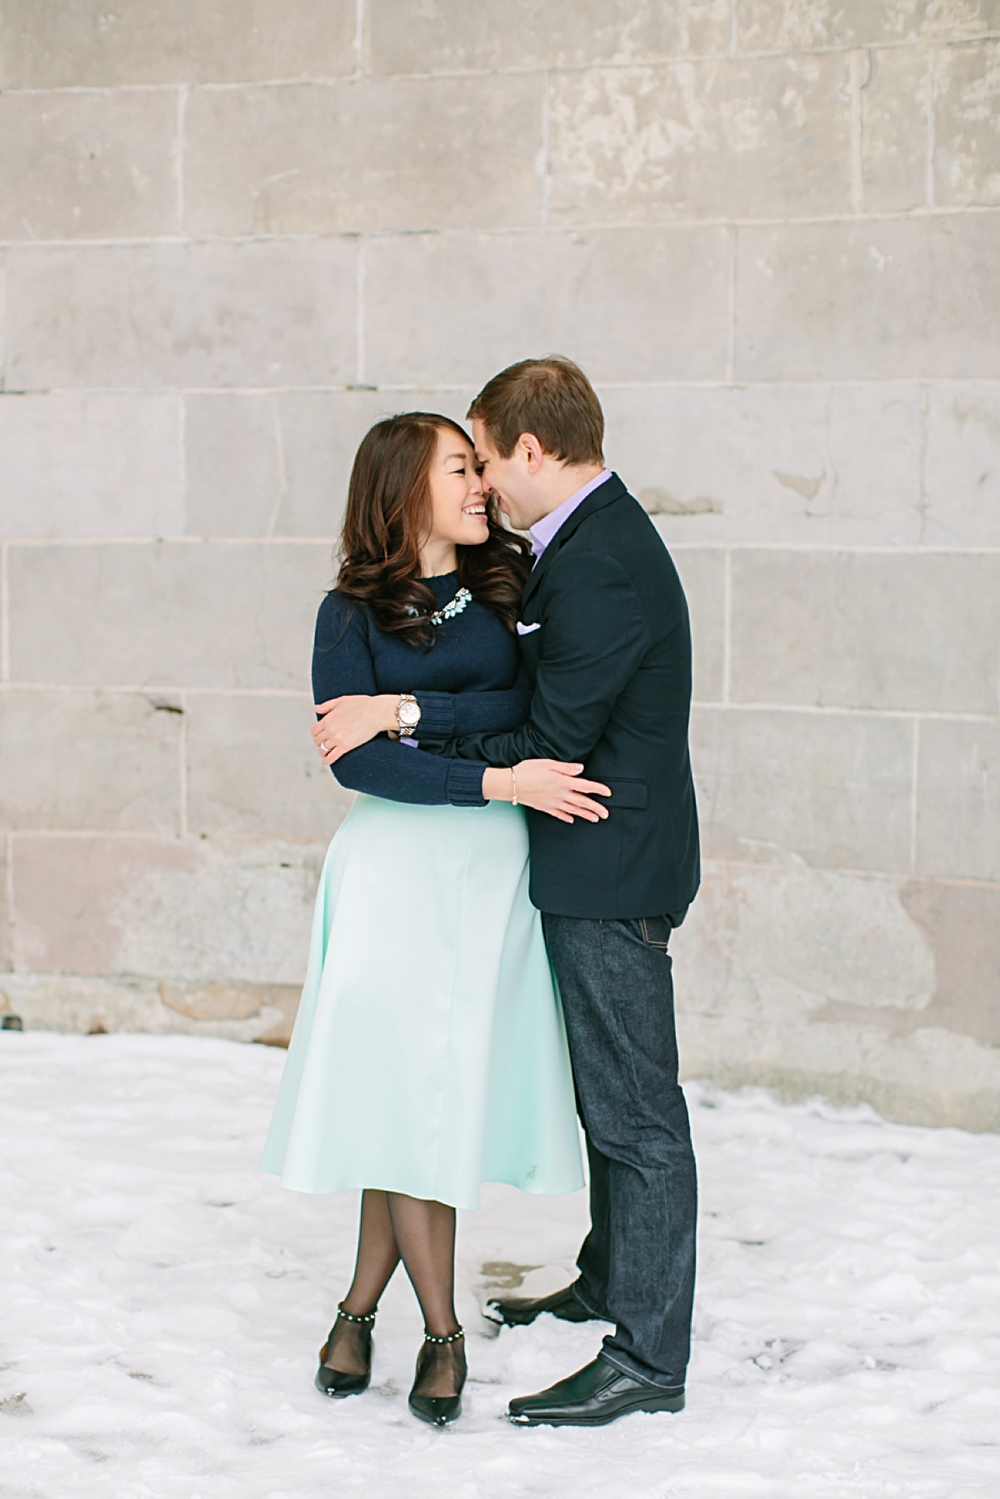 central_park_new_york_city_winter_engagement_photos_0004.jpg